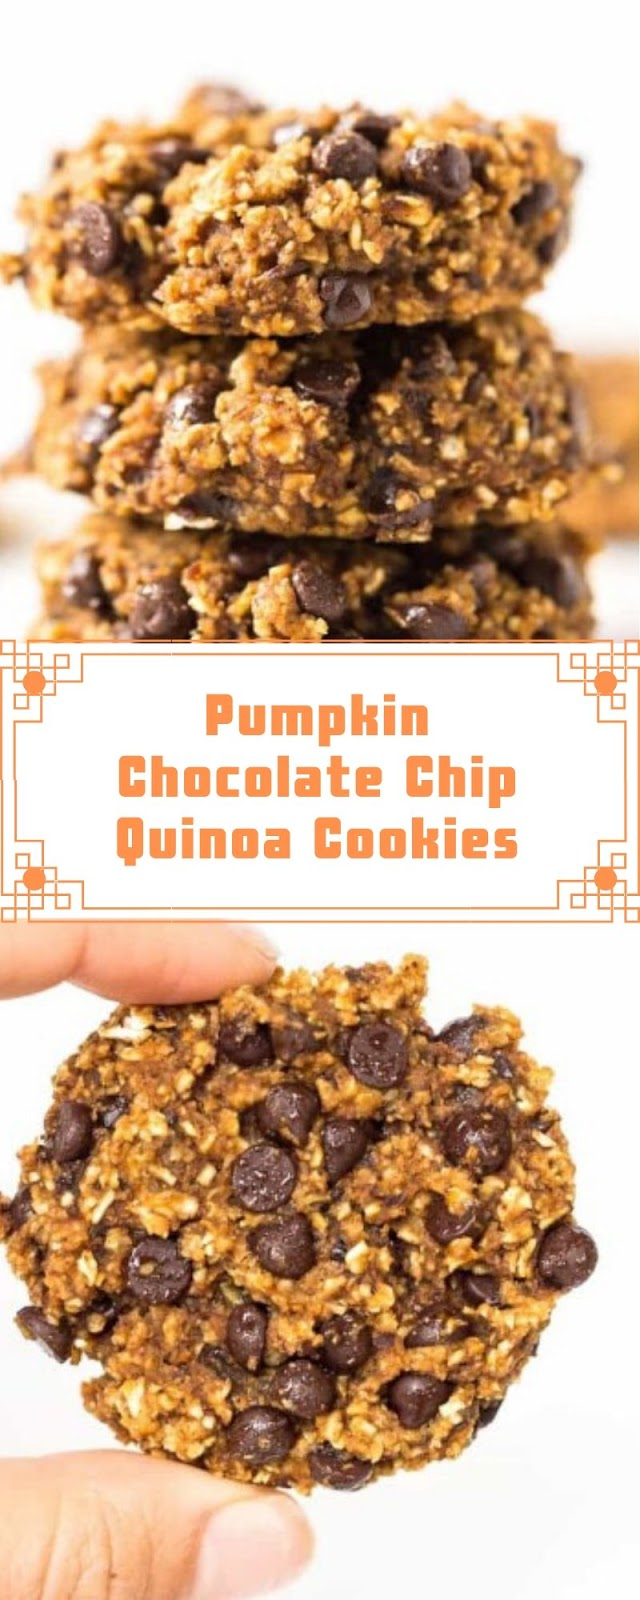 Pumpkin Chocolate Chip Quinoa Cookies